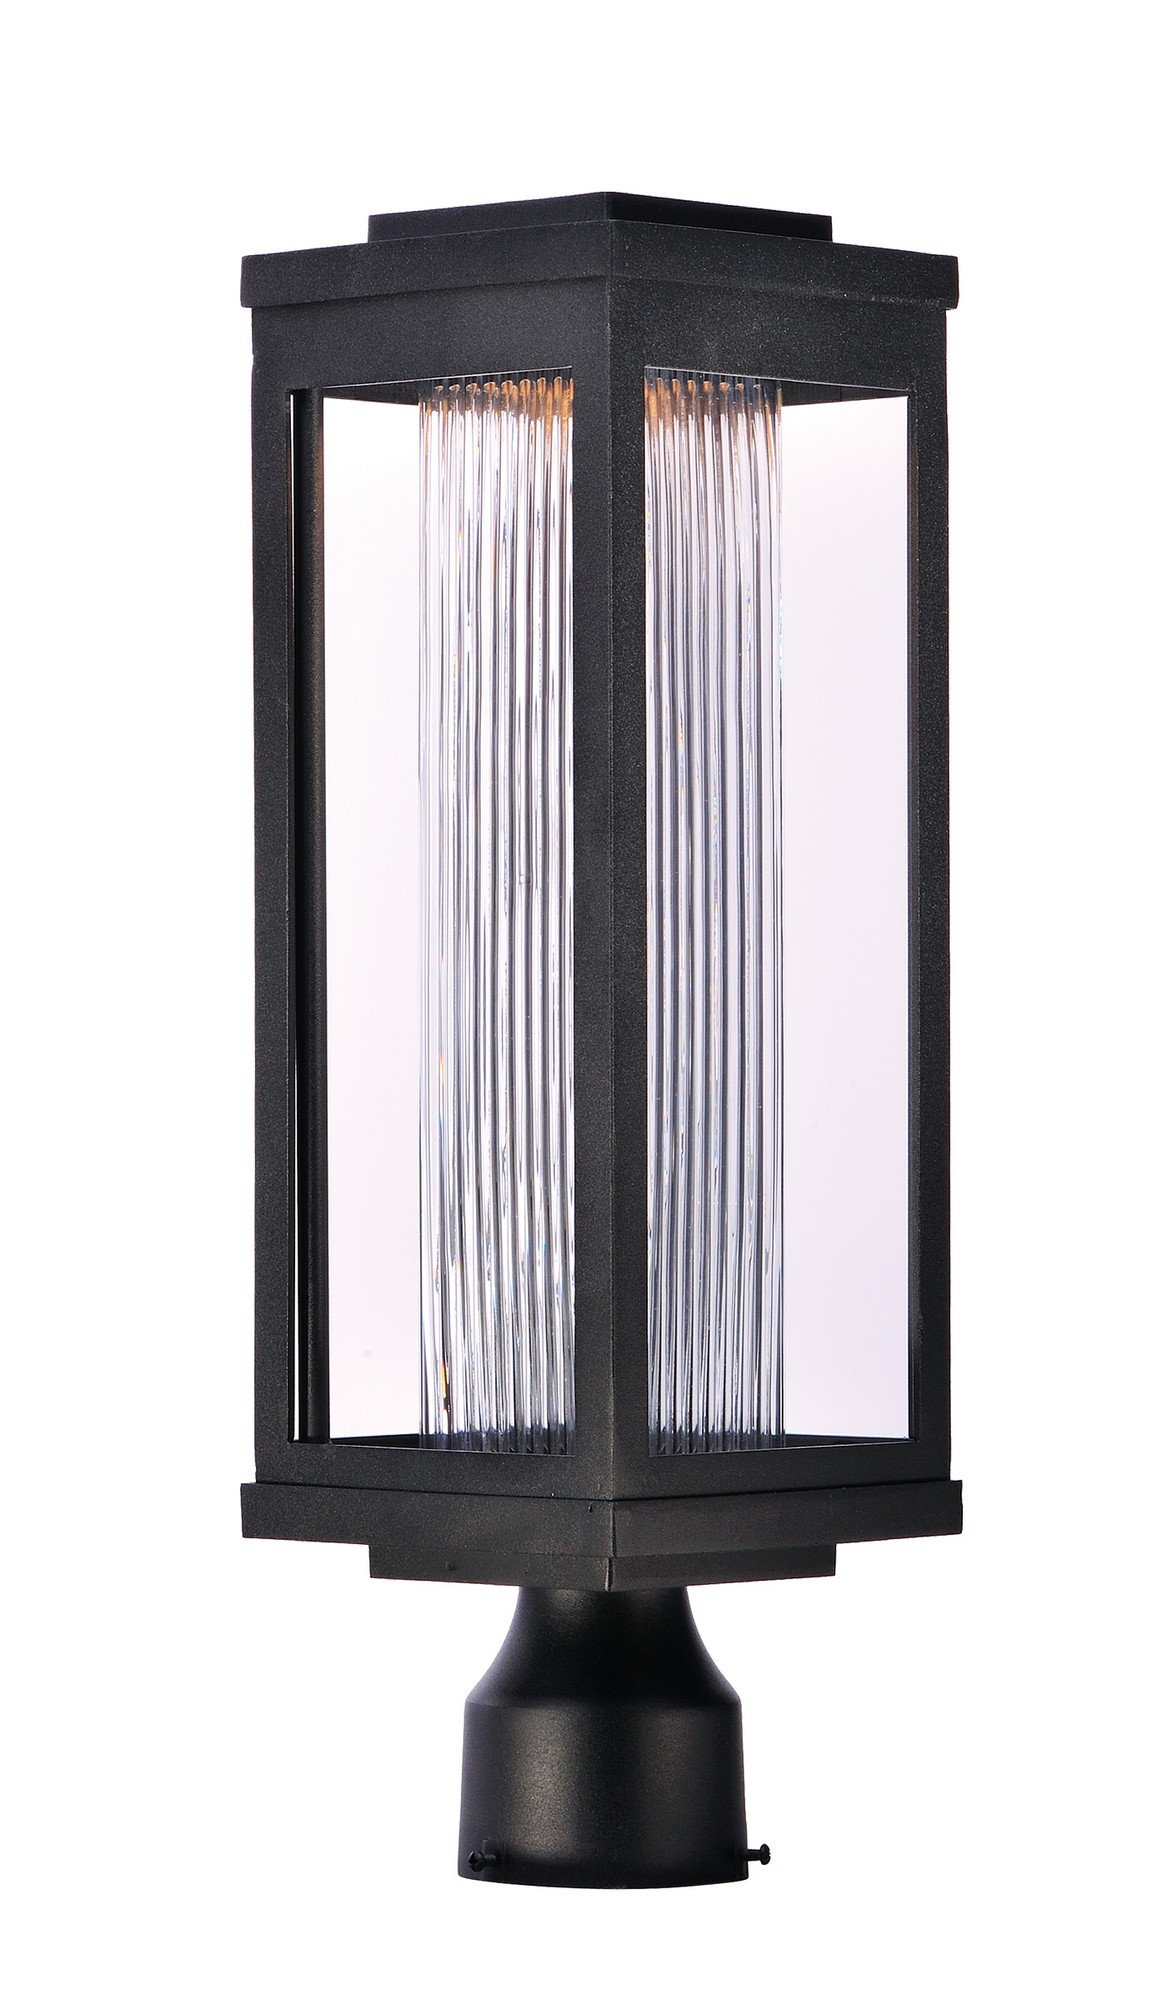 Maxim 55900CRBK Salon LED 1-Light Outdoor Post, Black Finish, Clear Ribbed Glass, PCB LED Bulb , 60W Max., Dry Safety Rating, Standard Dimmable, Shade Material, 3360 Rated Lumens